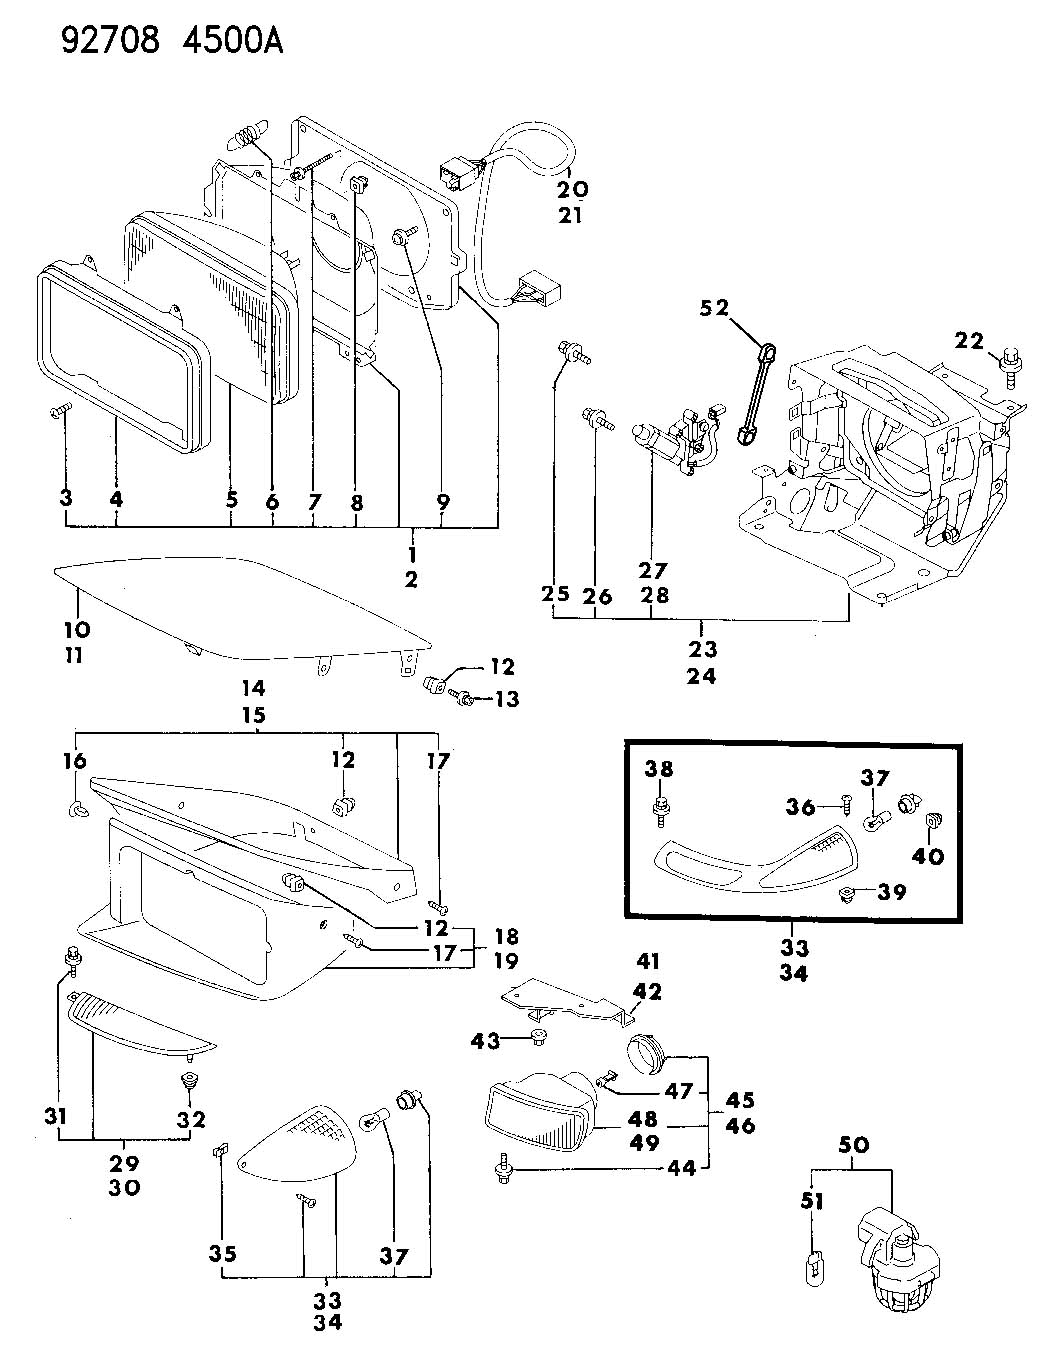 93 dodge stealth fuse box diagram